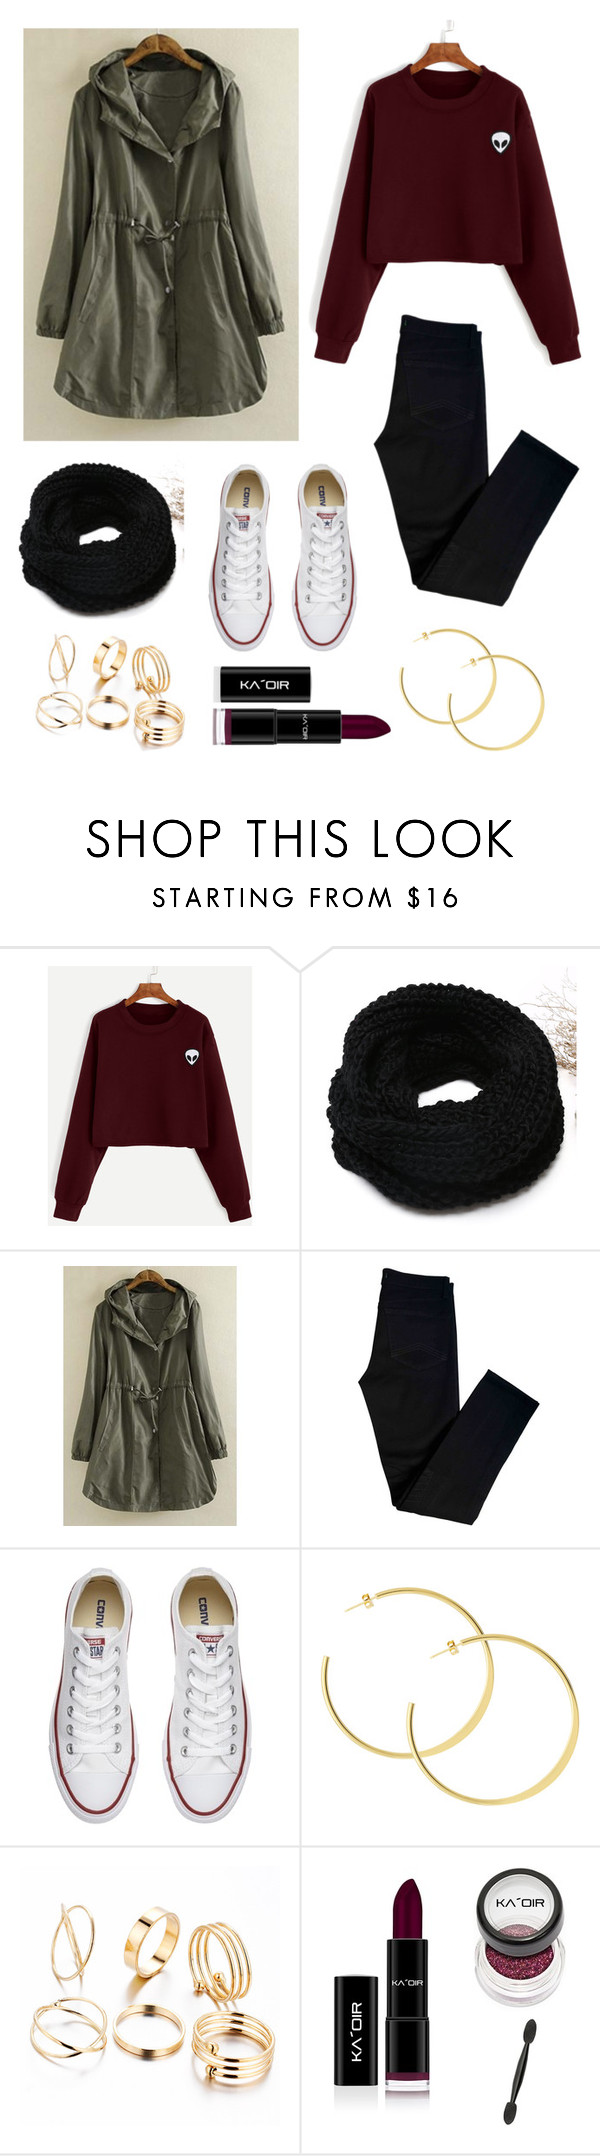 """I'm back"" by queen-ken ❤ liked on Polyvore featuring WithChic, J Brand and Converse"